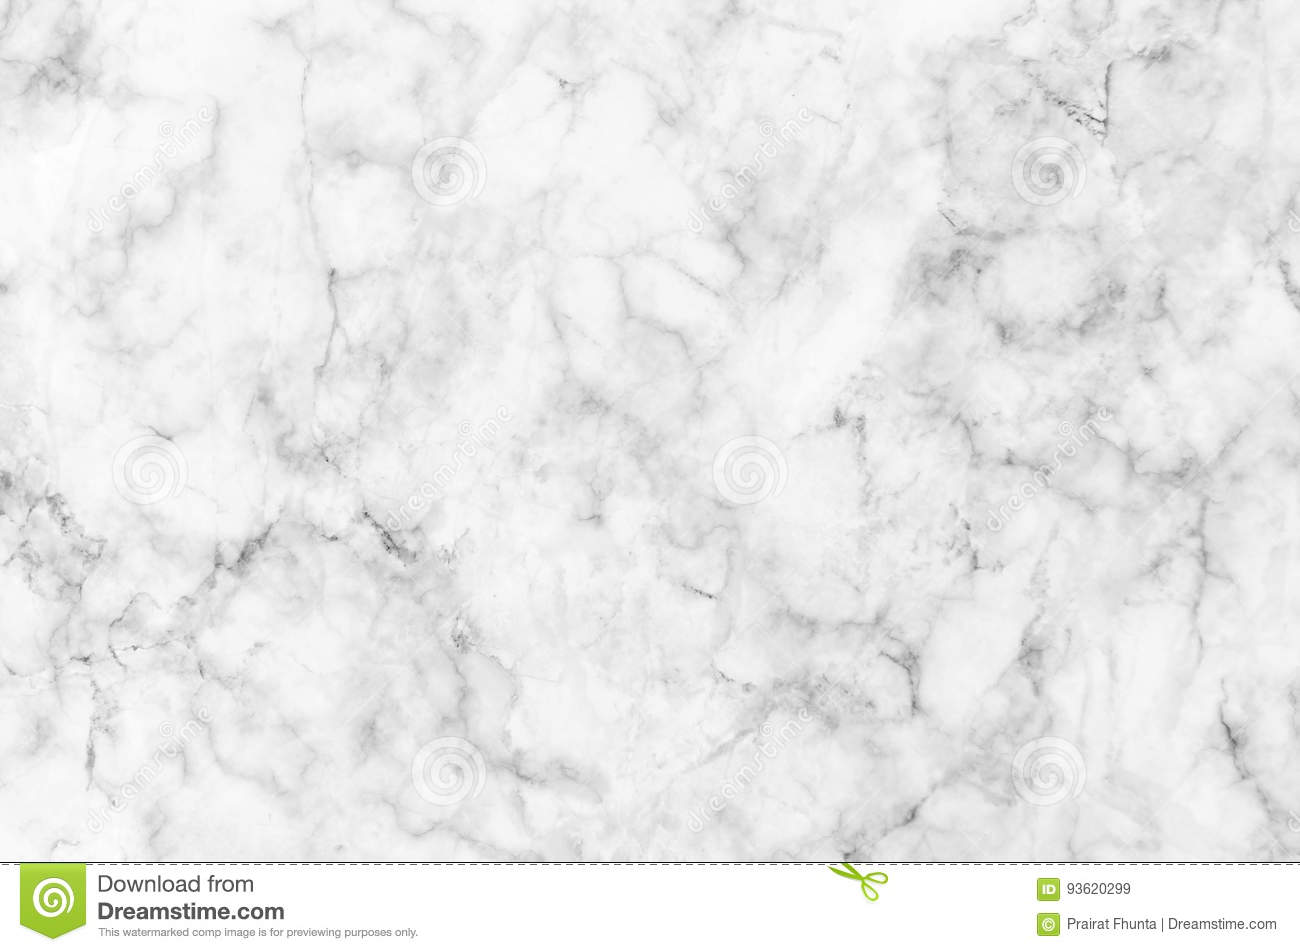 White Marble Texture With Subtle Grey Veins Stock Image Image Of Effect Bathroom 93620299